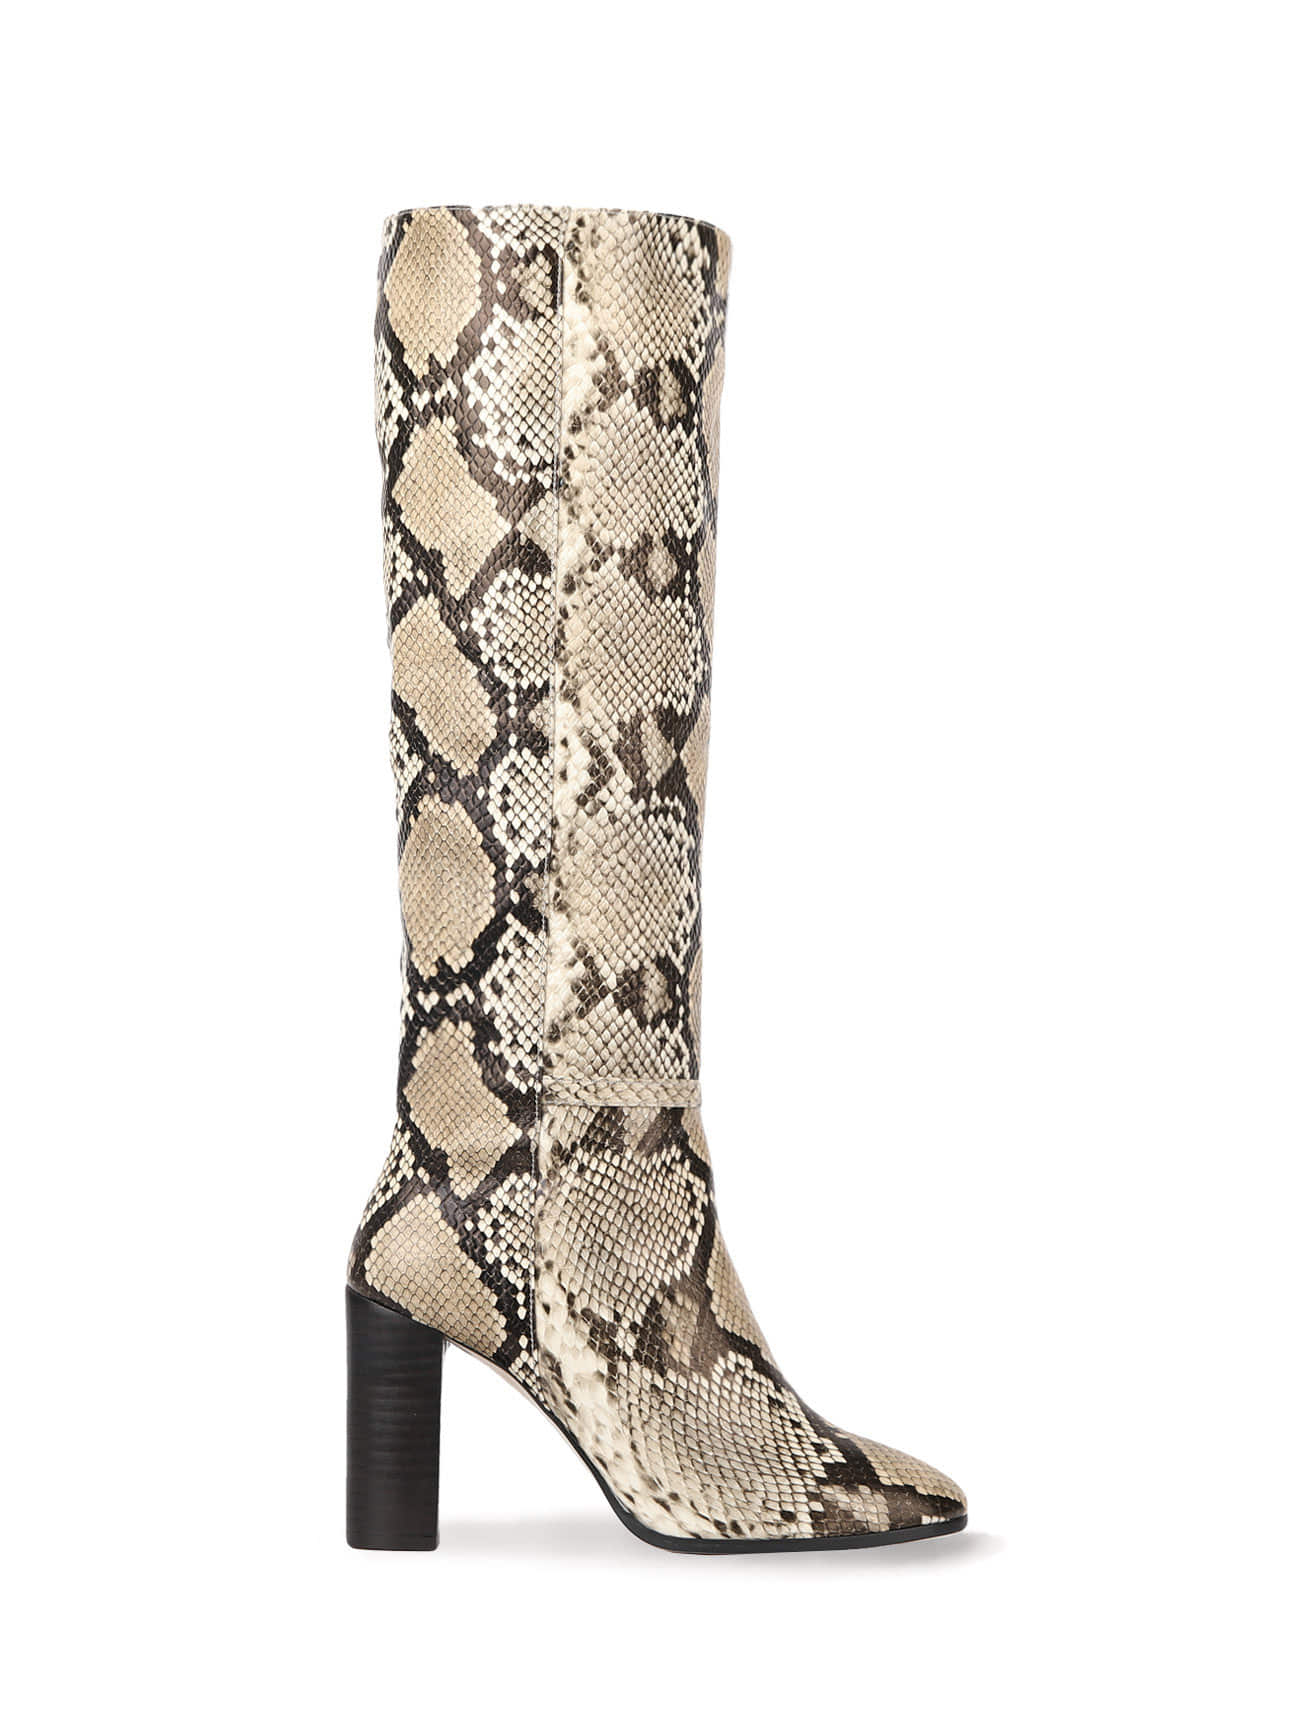 KATE LEATHER KNEE BOOTS (7cm, 9cm) - PYTHON